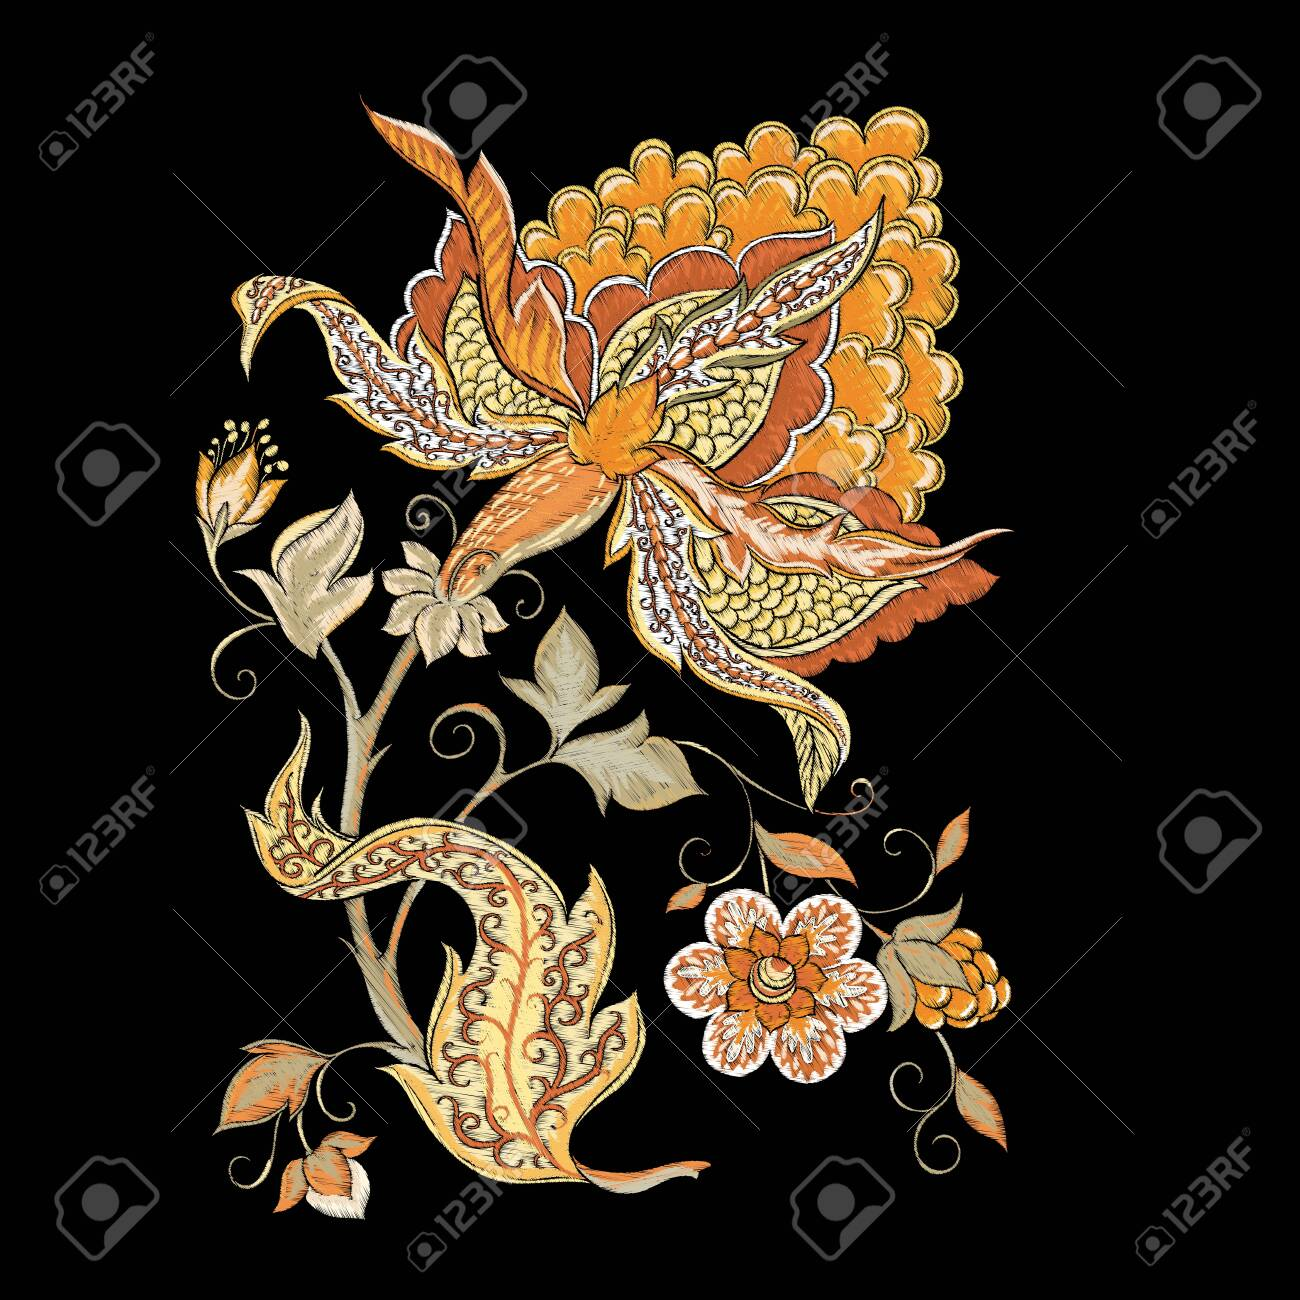 Elements for design. Fantasy flowers, traditional Jacobean embroidery style. Embroidery imitation. Vector illustration in beige colors isolated on black background.. - 133274673